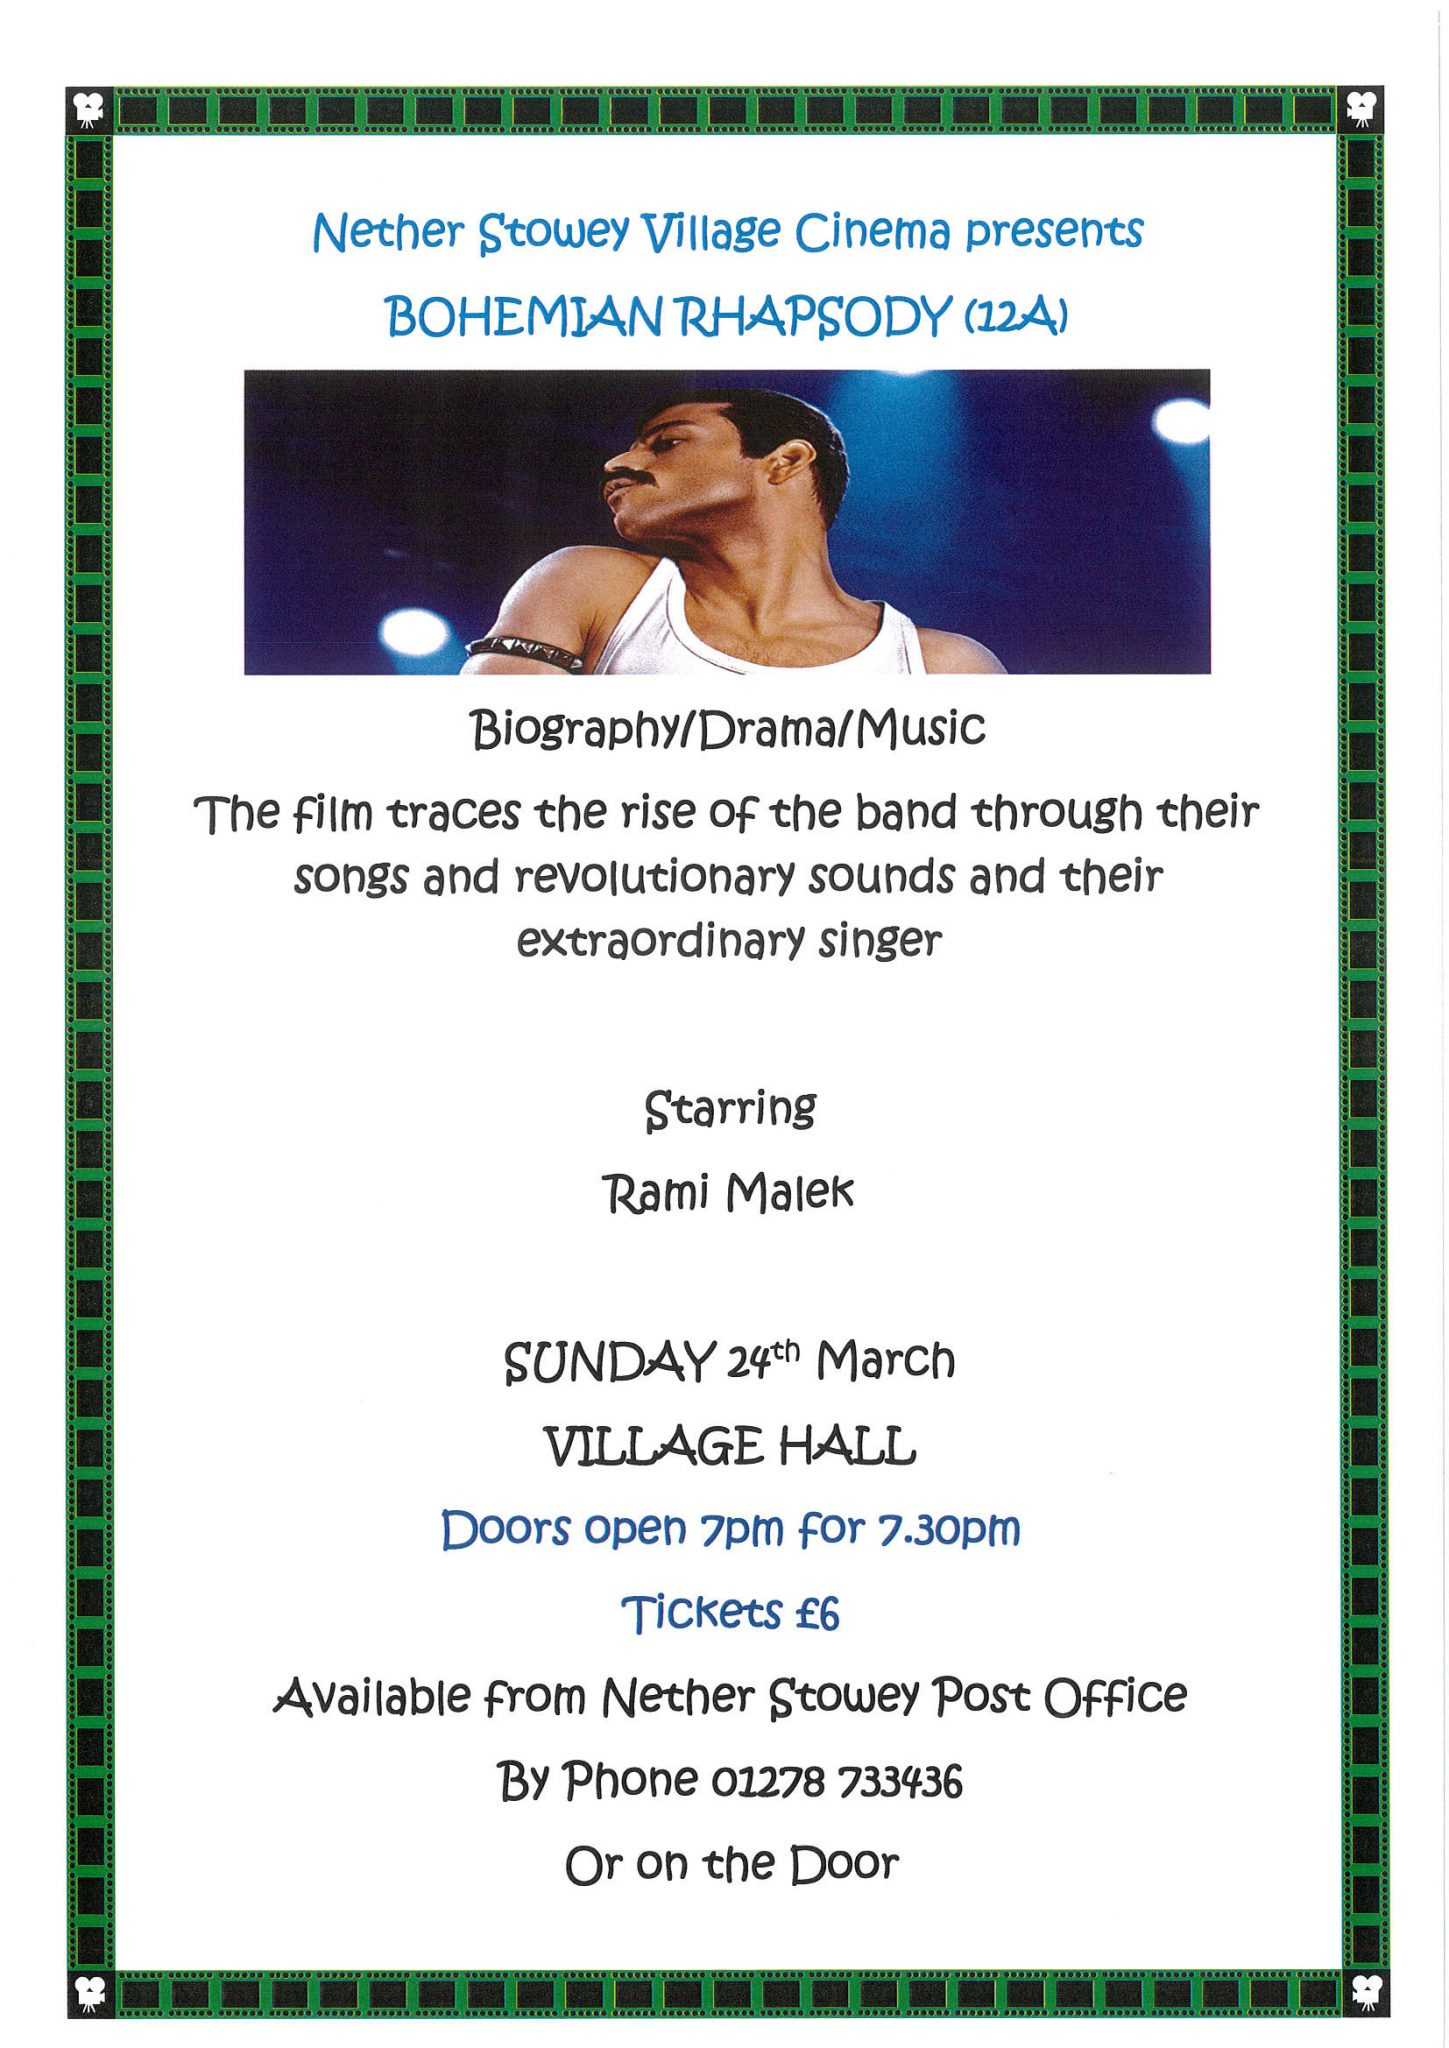 nether Stowey Village Cinema presents 'Bohemian Rhapsody' (12A) @ Nether Stowey Village Hall